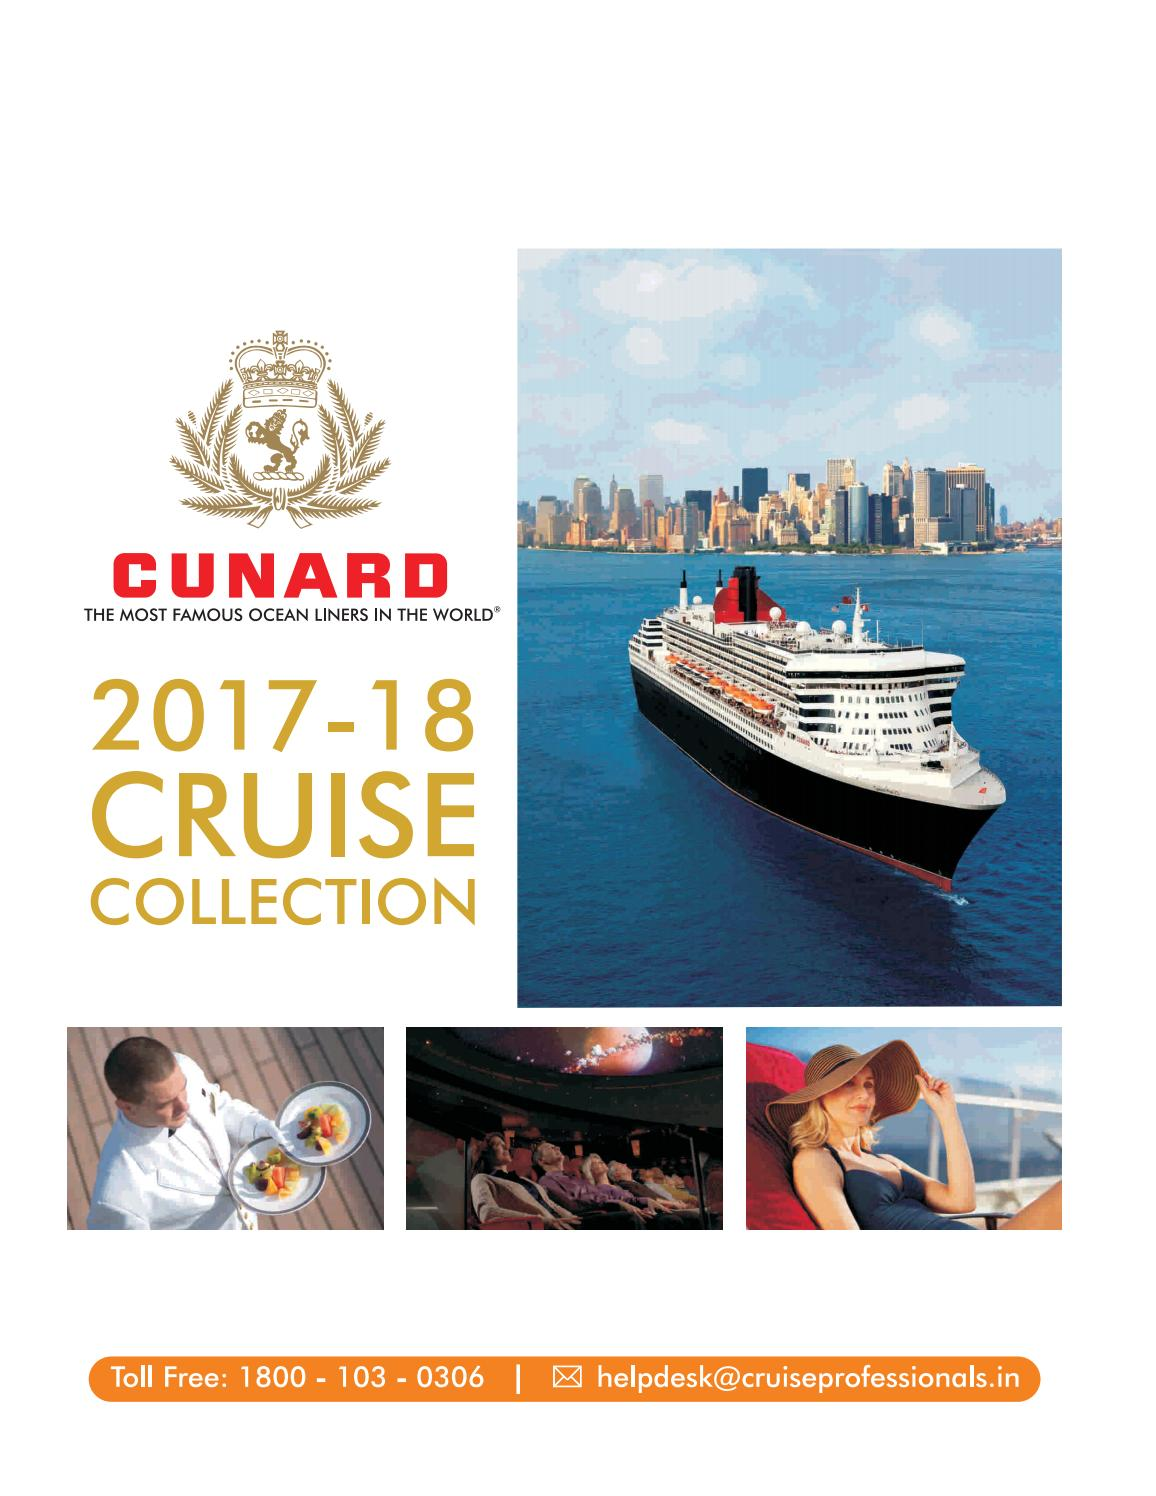 CUNARD 175 YEARS ANNIVERSARY PIN LIMITED EDITION